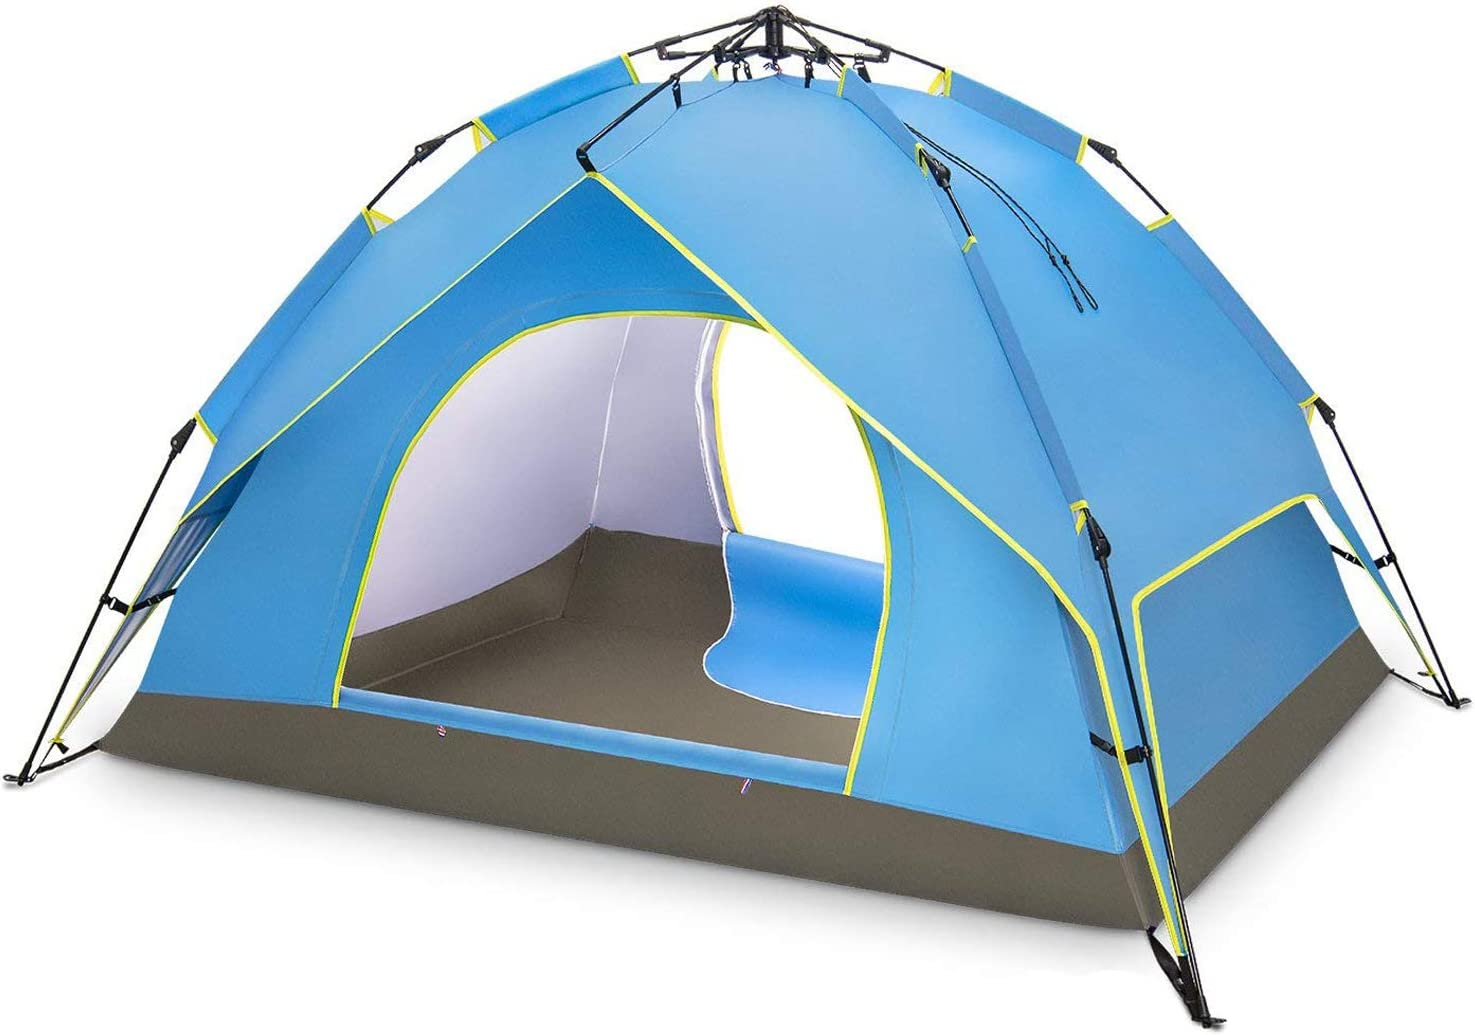 BATTOP 4 Person Family Camping Tent, 3